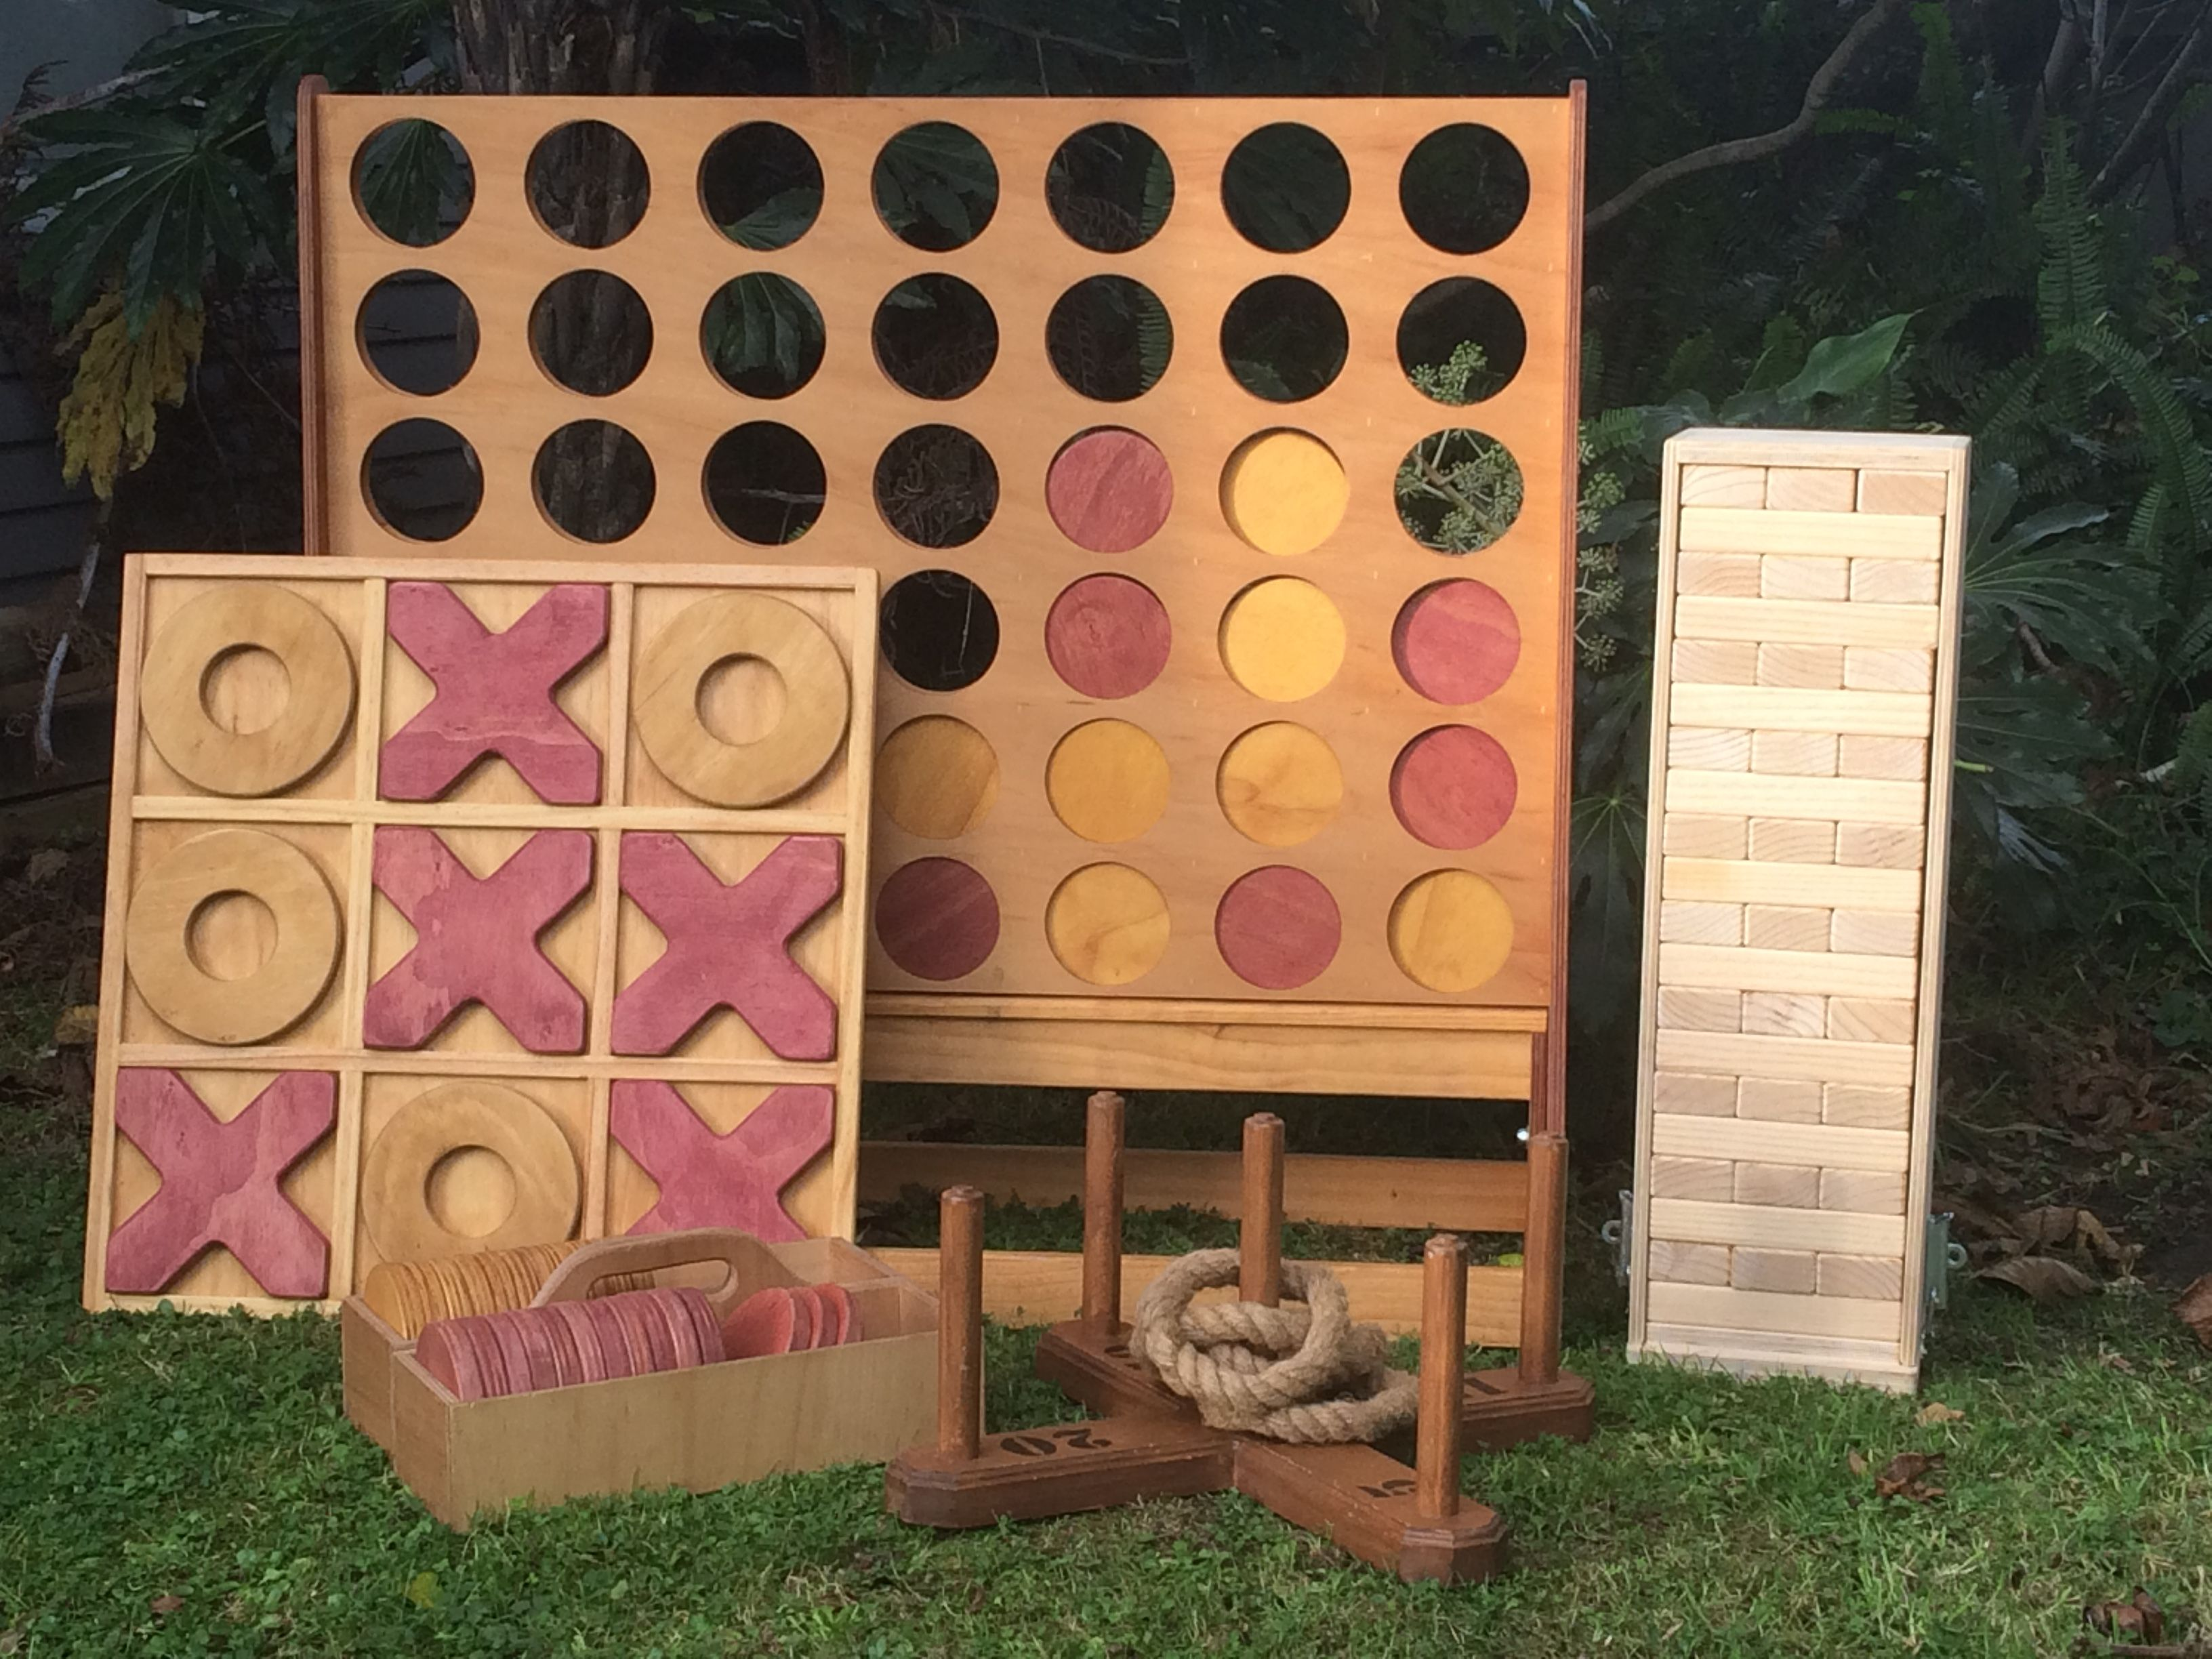 Wooden Games Hire For Weddings And Events Auckland Giant Connect 4 Jenga Quoitsthe Elves And The Woodb Yard Games For Kids Garden Wedding Games Wooden Games